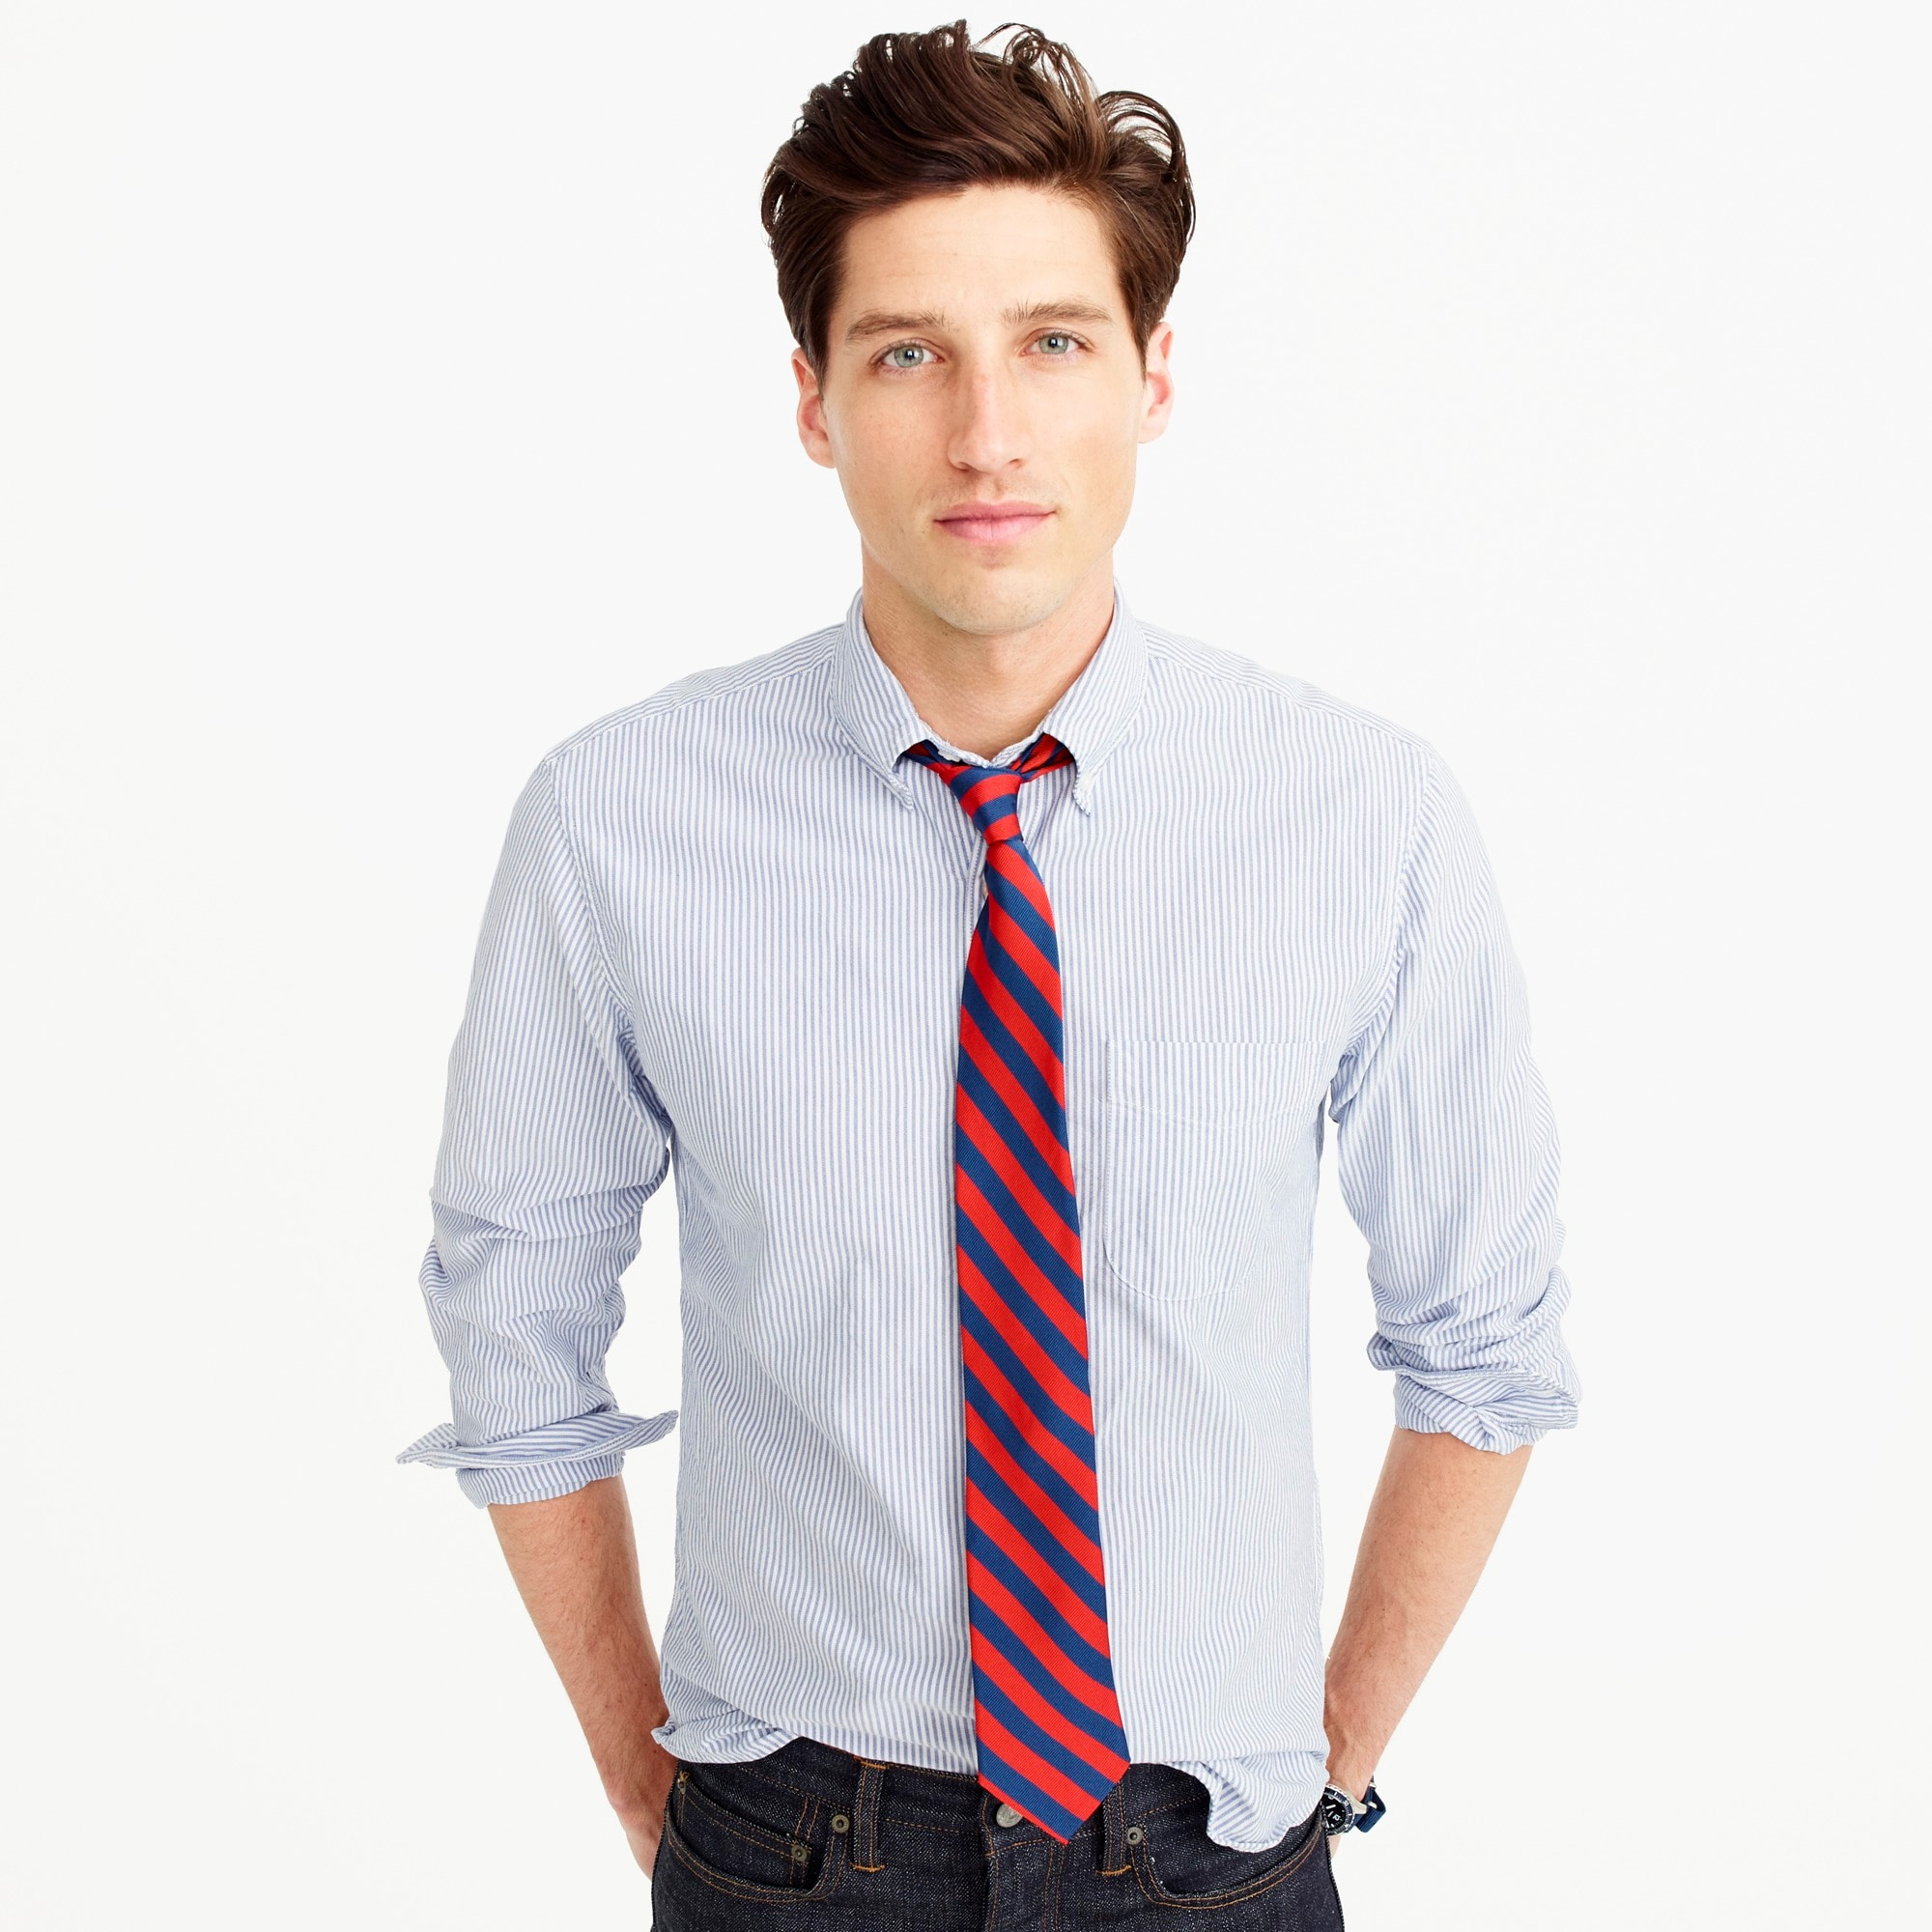 Image 1 for Slim American Pima cotton oxford shirt in stripe